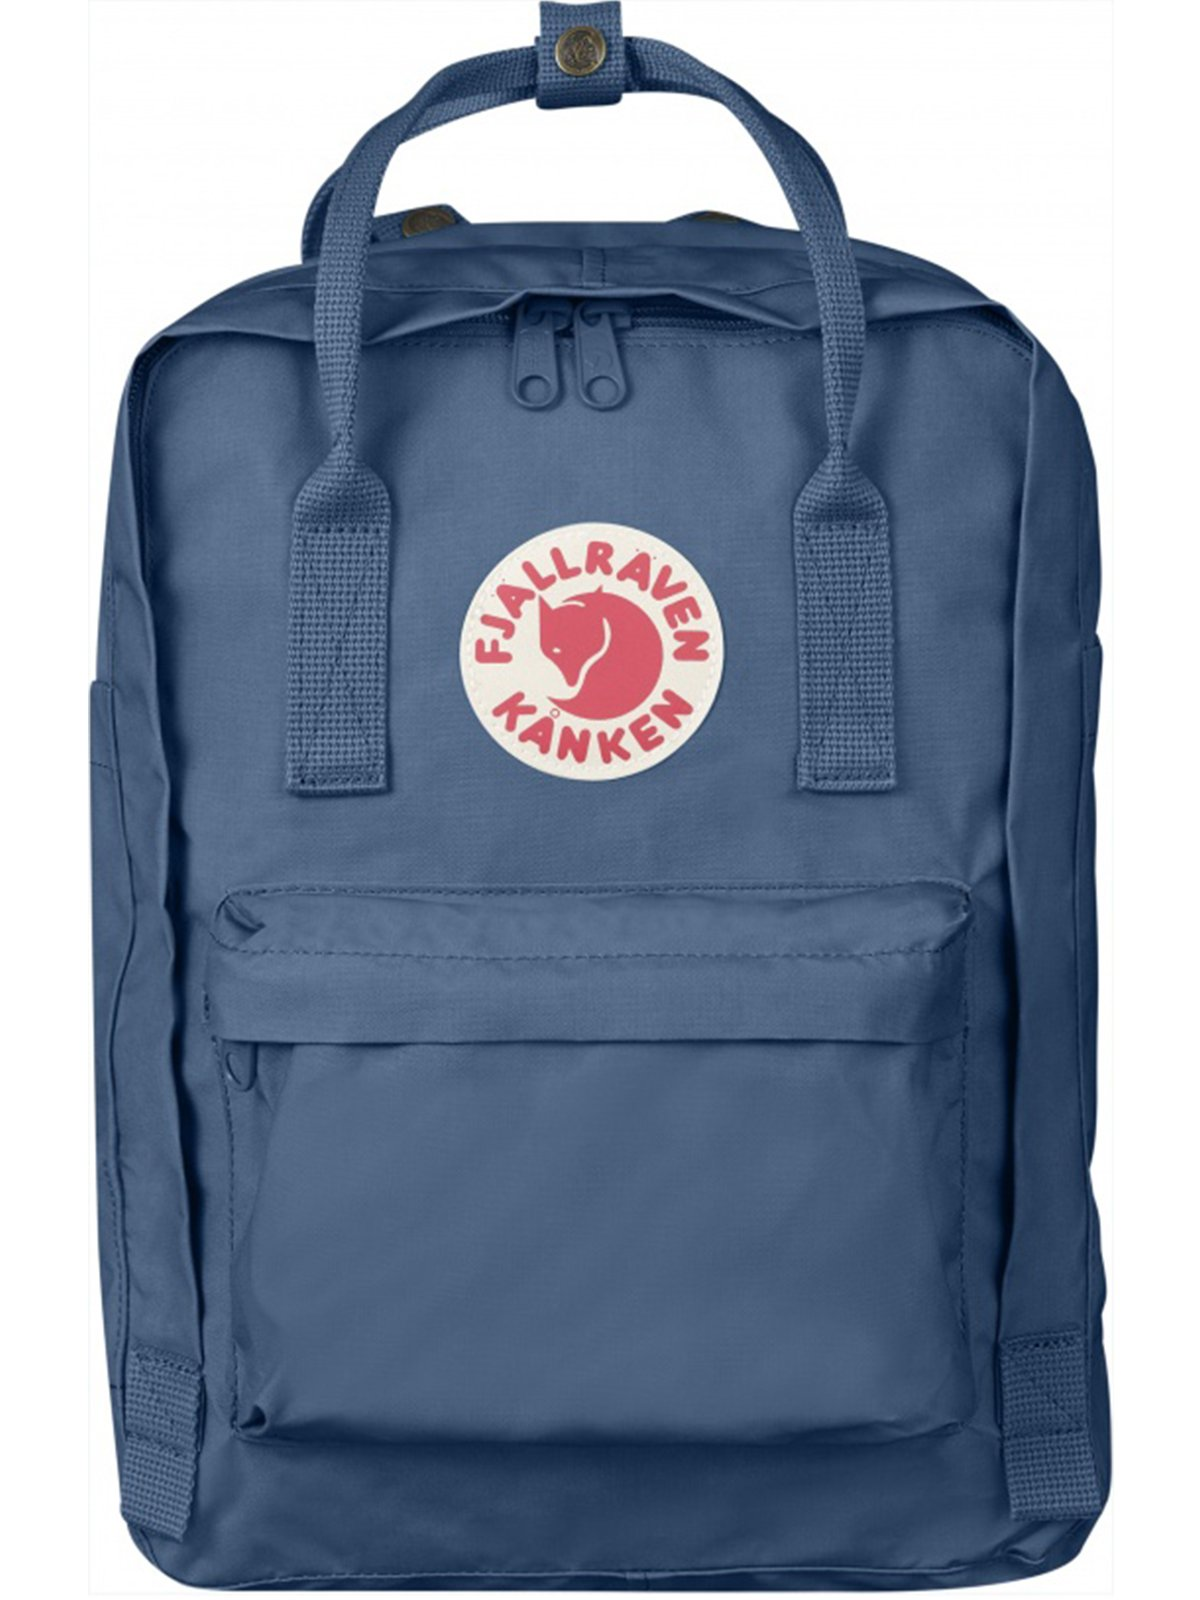 41d9b705e Buy Original Fjallraven Fjallraven Kanken Laptop 13 Inch Blue Ridge ...